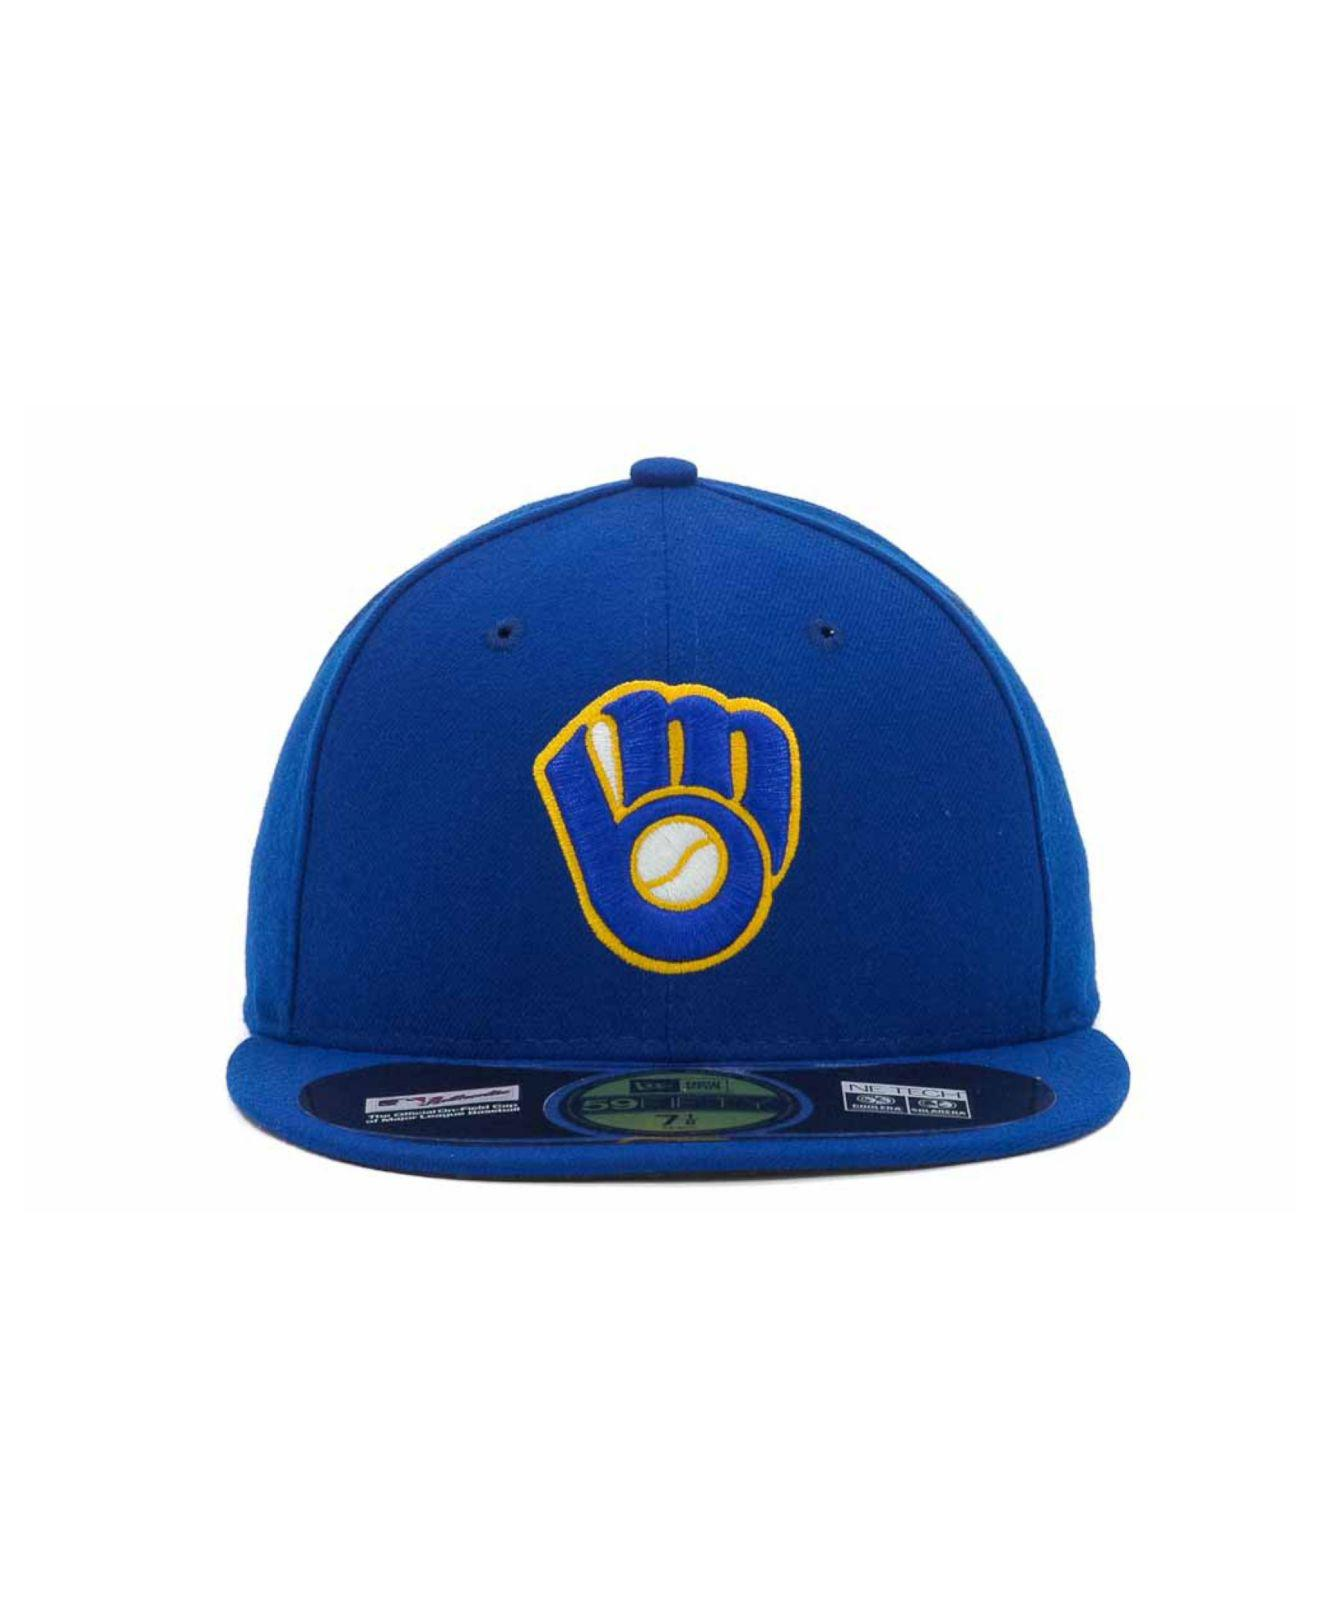 buy popular cdc3b 11ebd Lyst - KTZ Milwaukee Brewers Authentic Collection 59fifty Hat in Blue for  Men